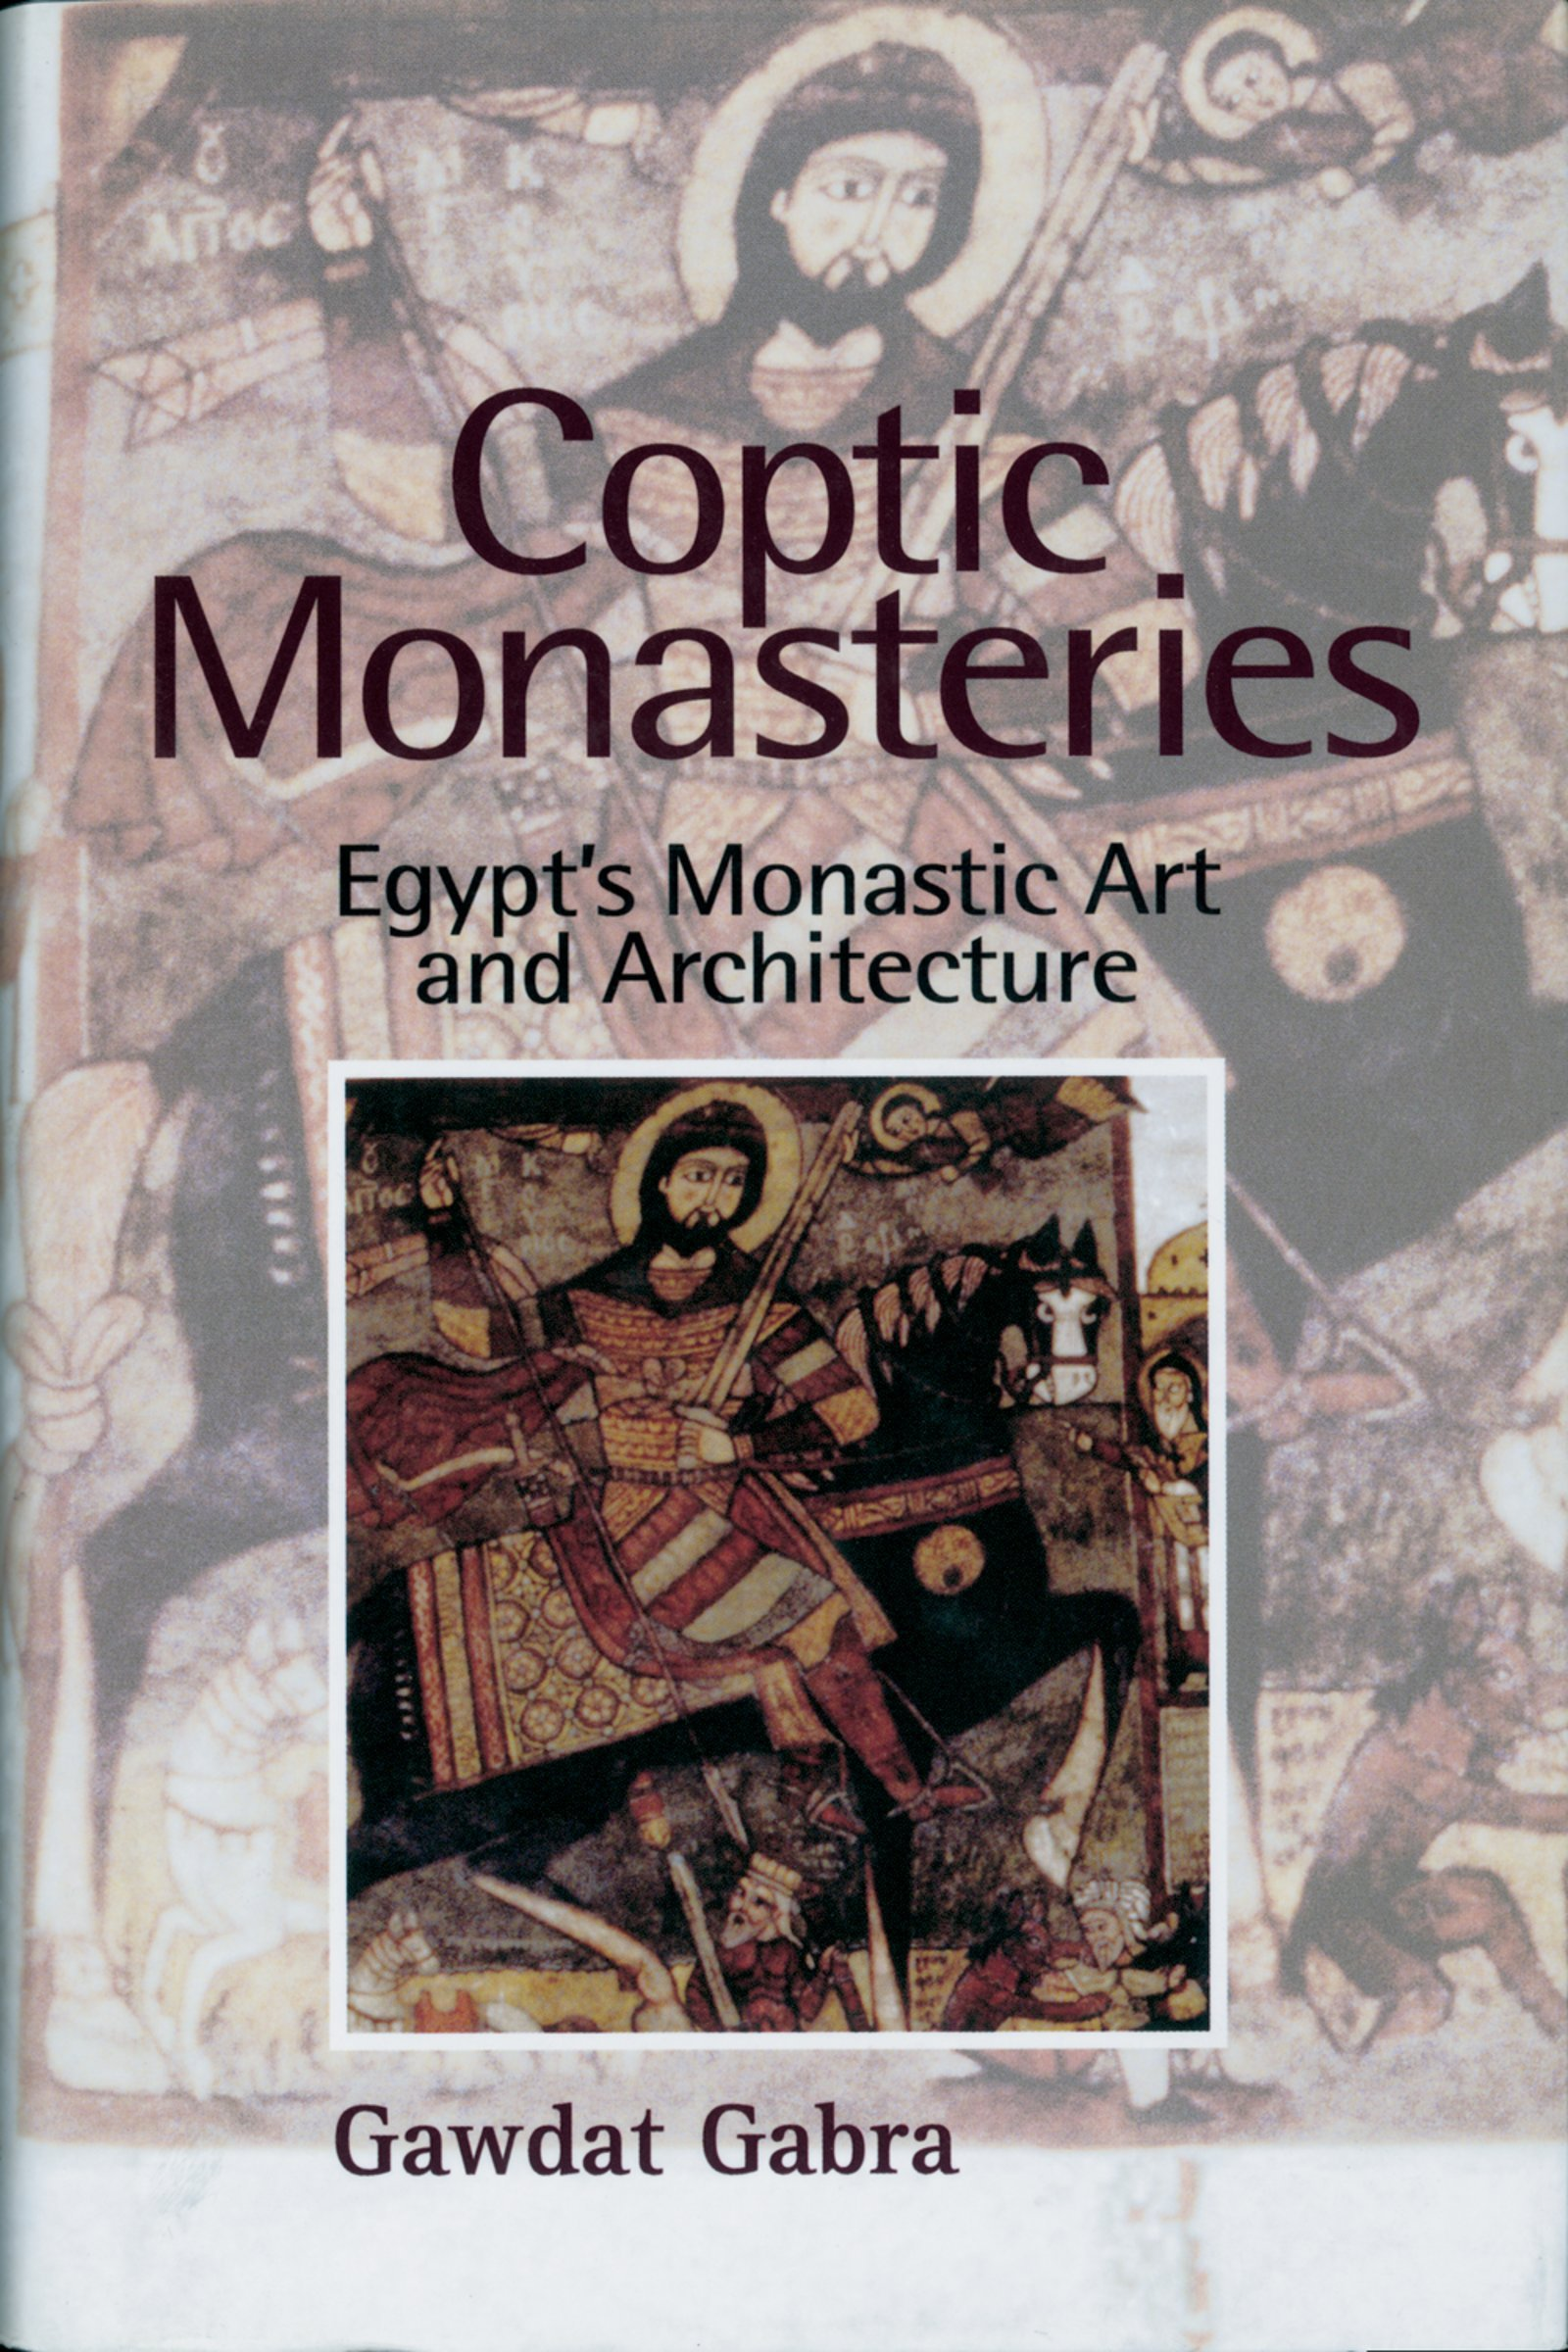 Coptic Monasteries: Egypt's Monastic Art and Architecture: Gabra, Gawdat:  9789774246913: Amazon.com: Books